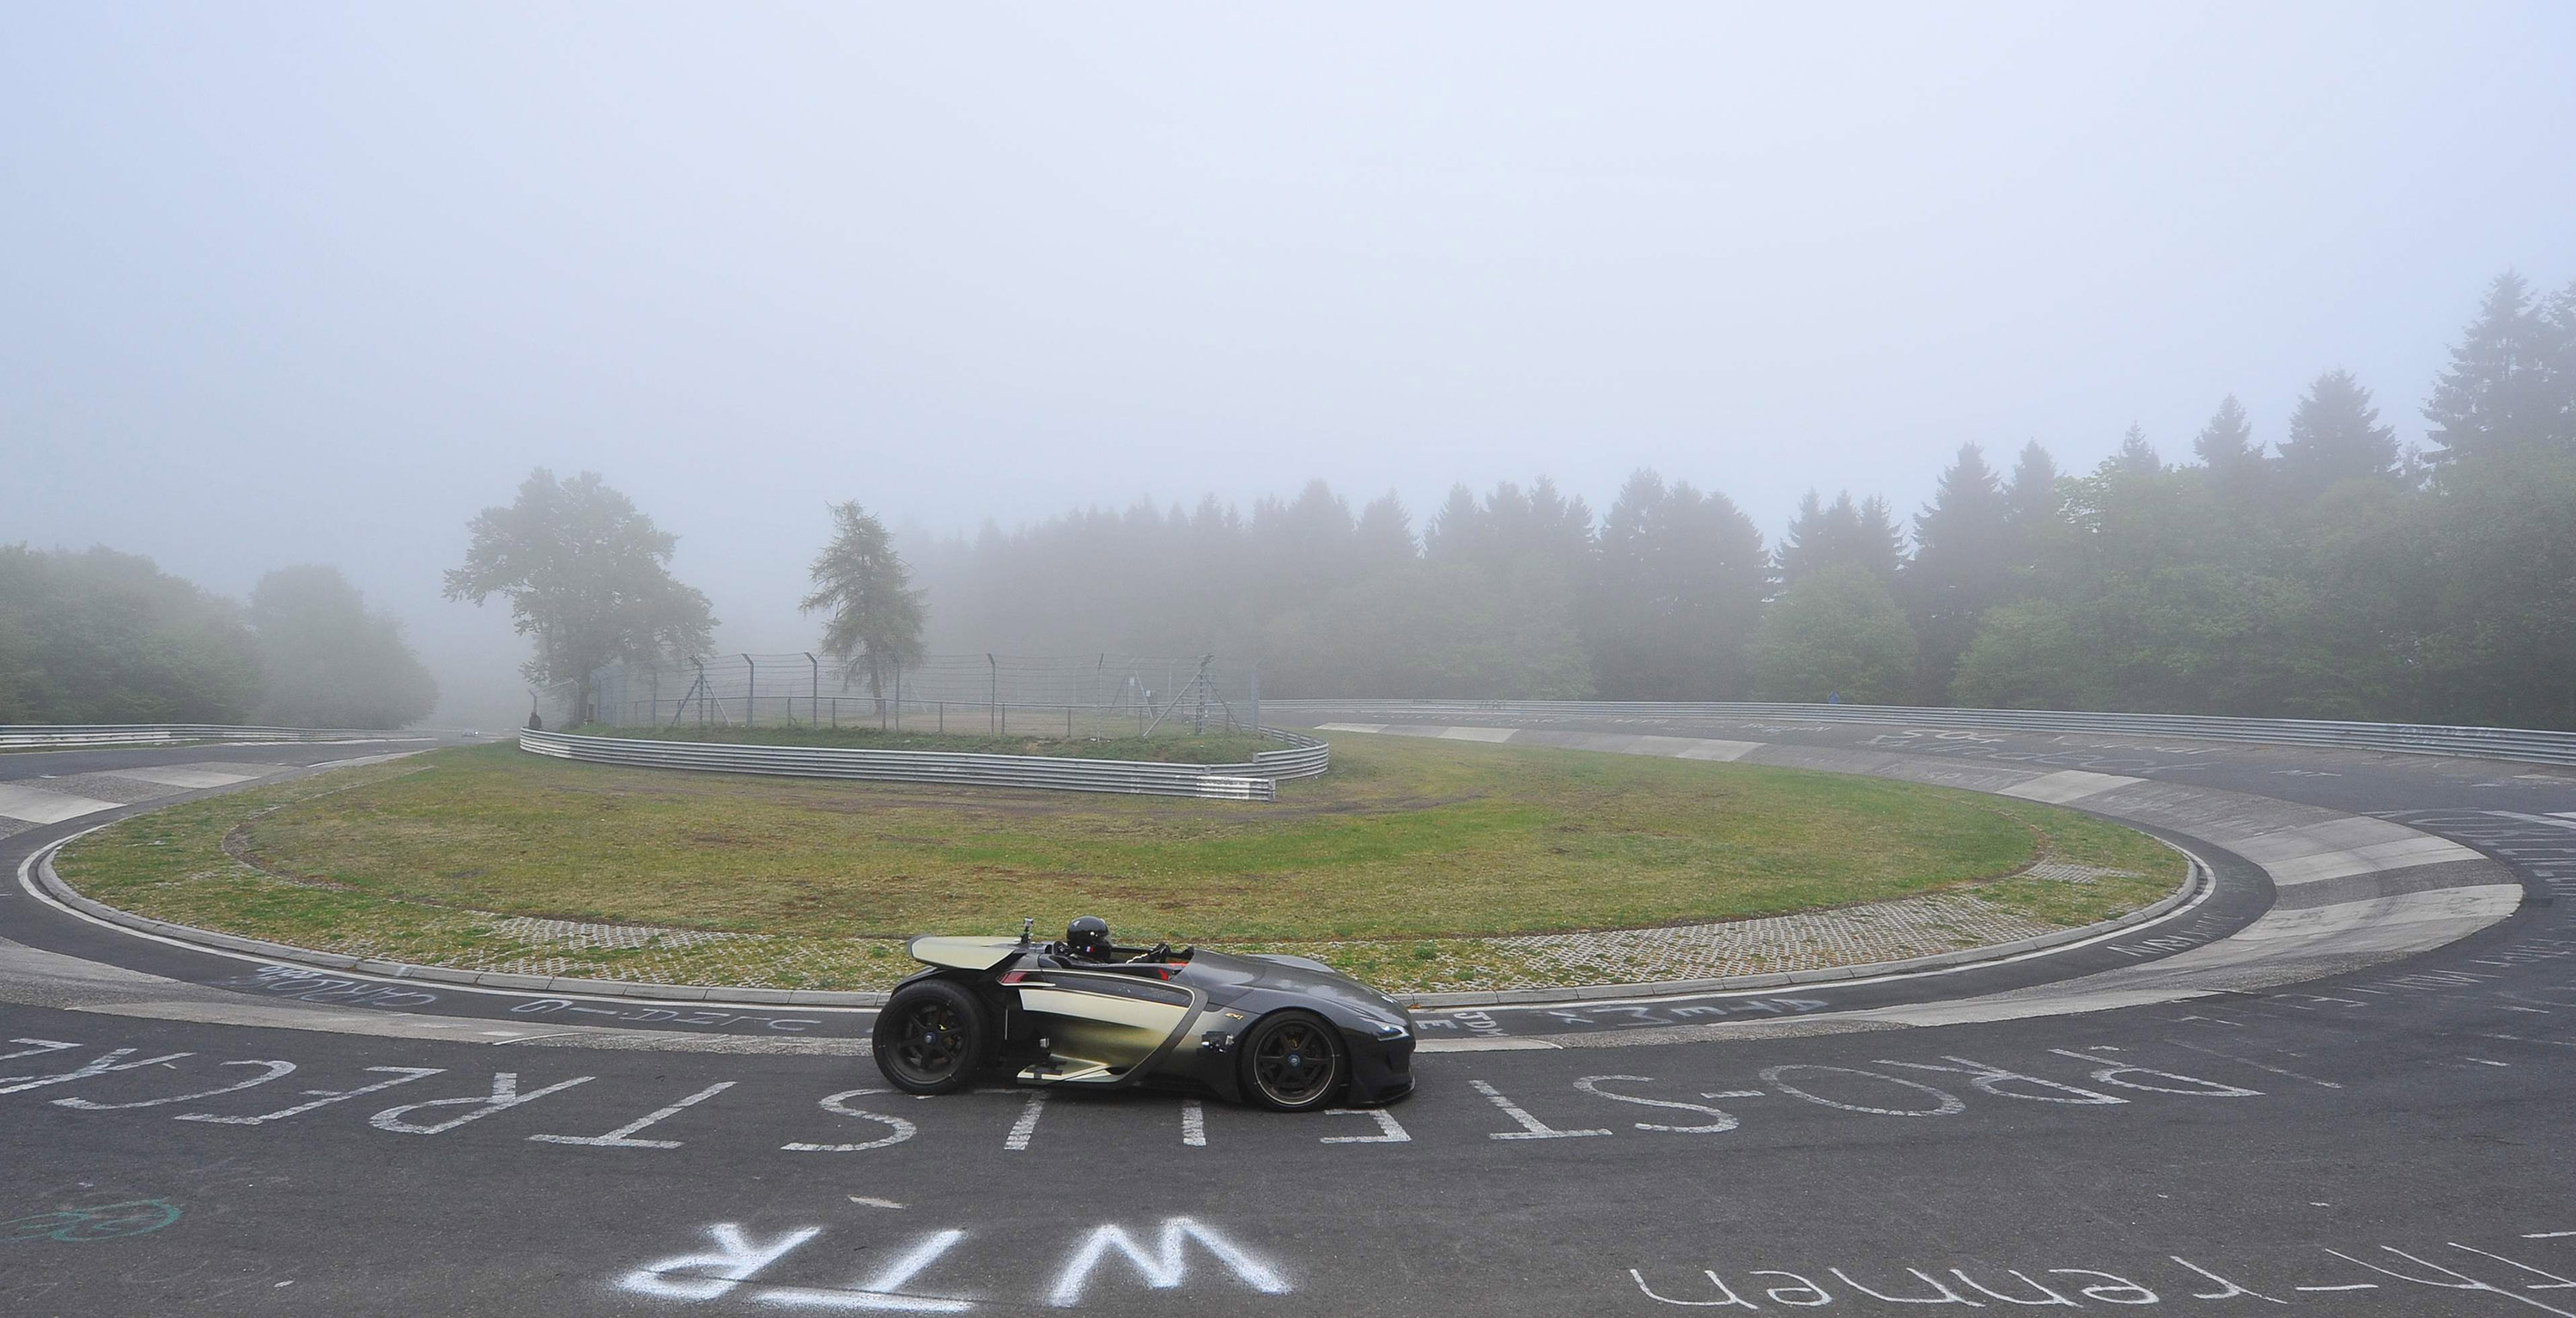 Peugeot Ex1 Nurburgring Nordschleife Record Time